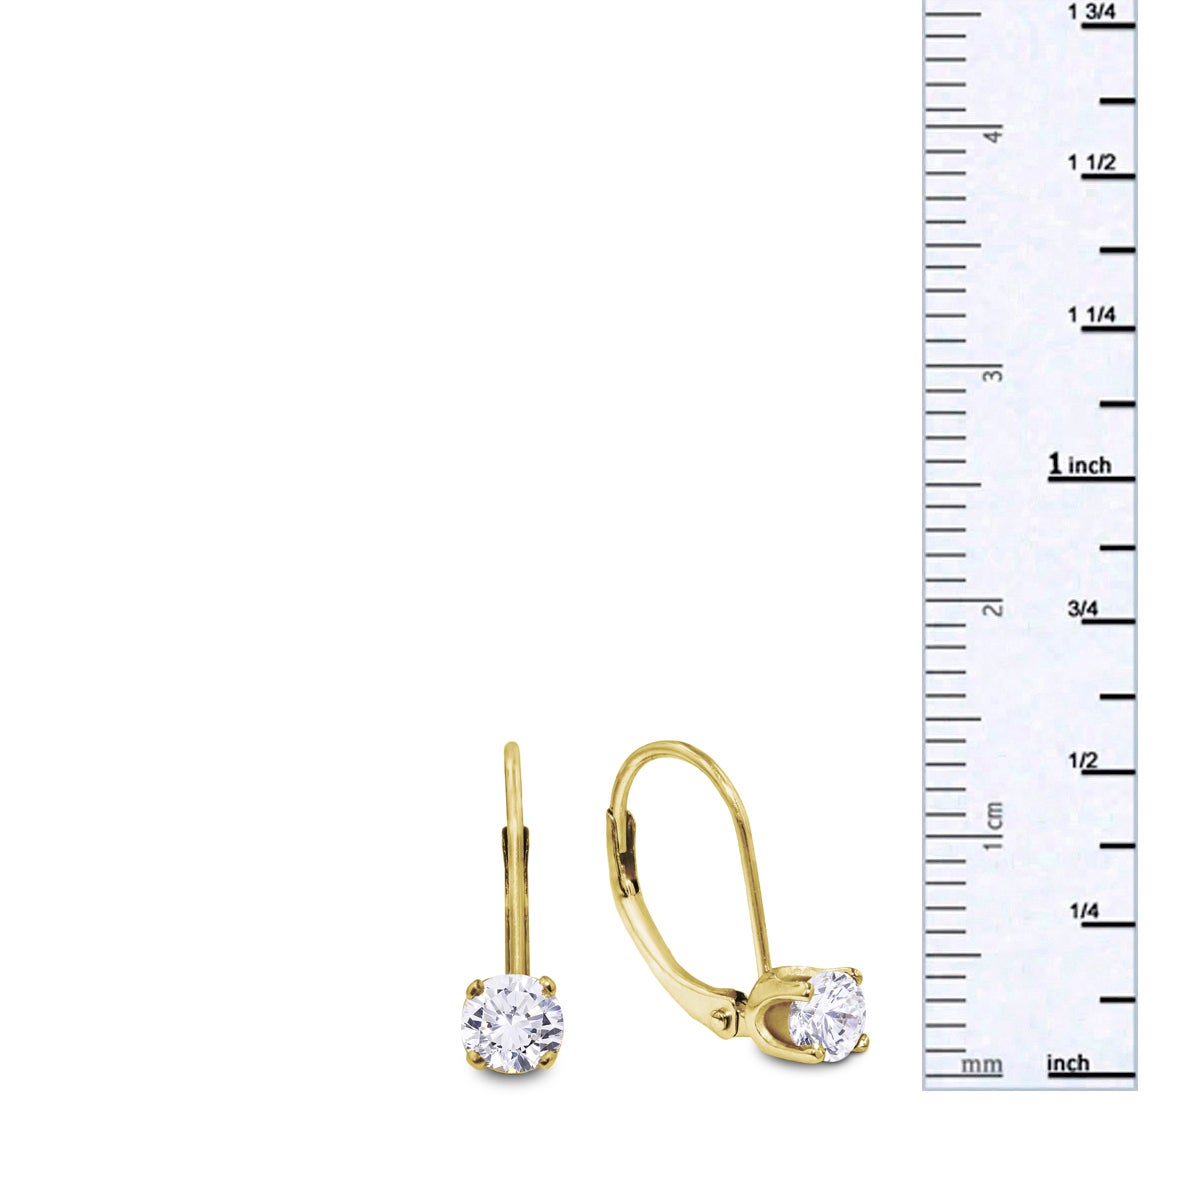 1 2 Carat Diamond Leverback Earrings In 14 Karat Yellow Gold J K I2 I3 On Free Shipping Today 10909229